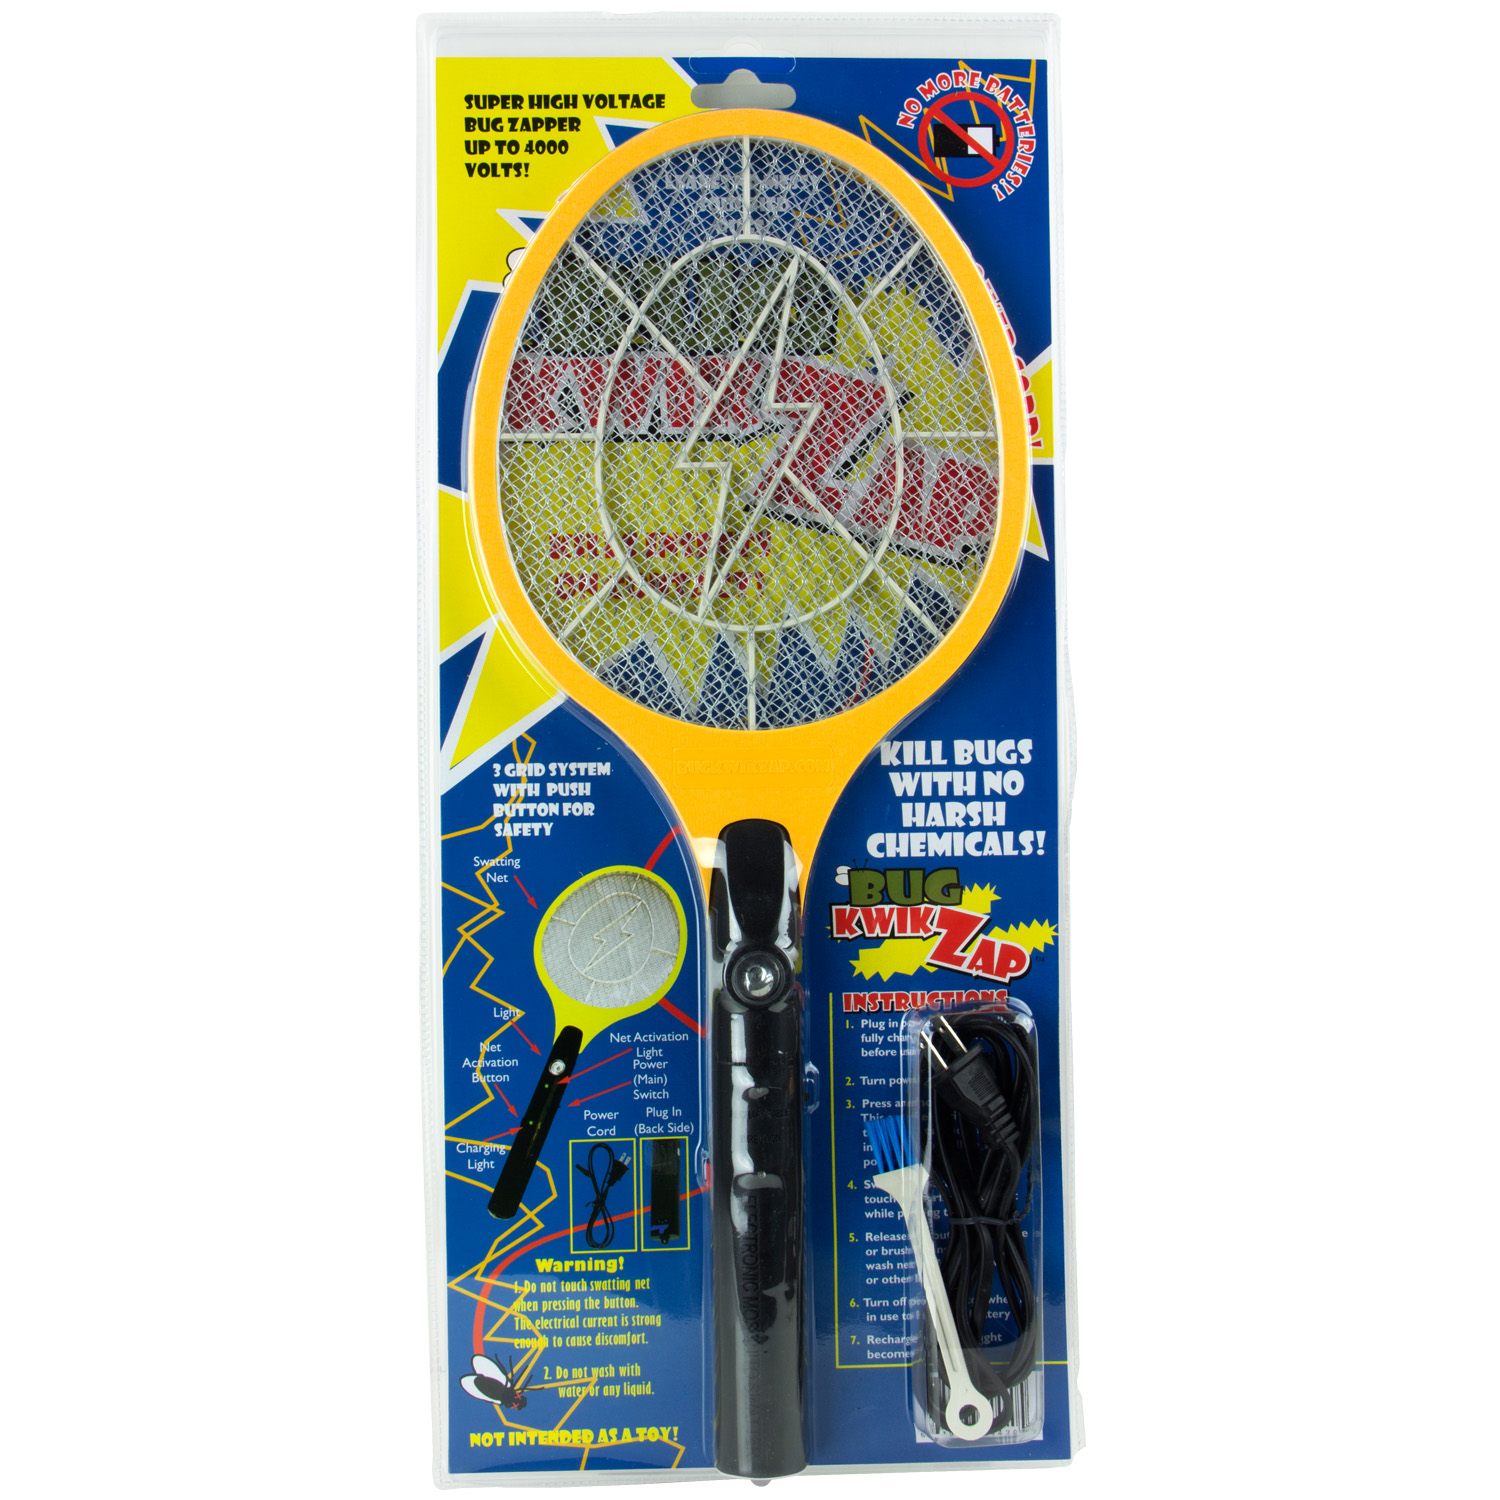 BugKwikZap - Blacktail Rechargable Electric Bug Zapper Super High Voltage (Discharge up to 2300V)